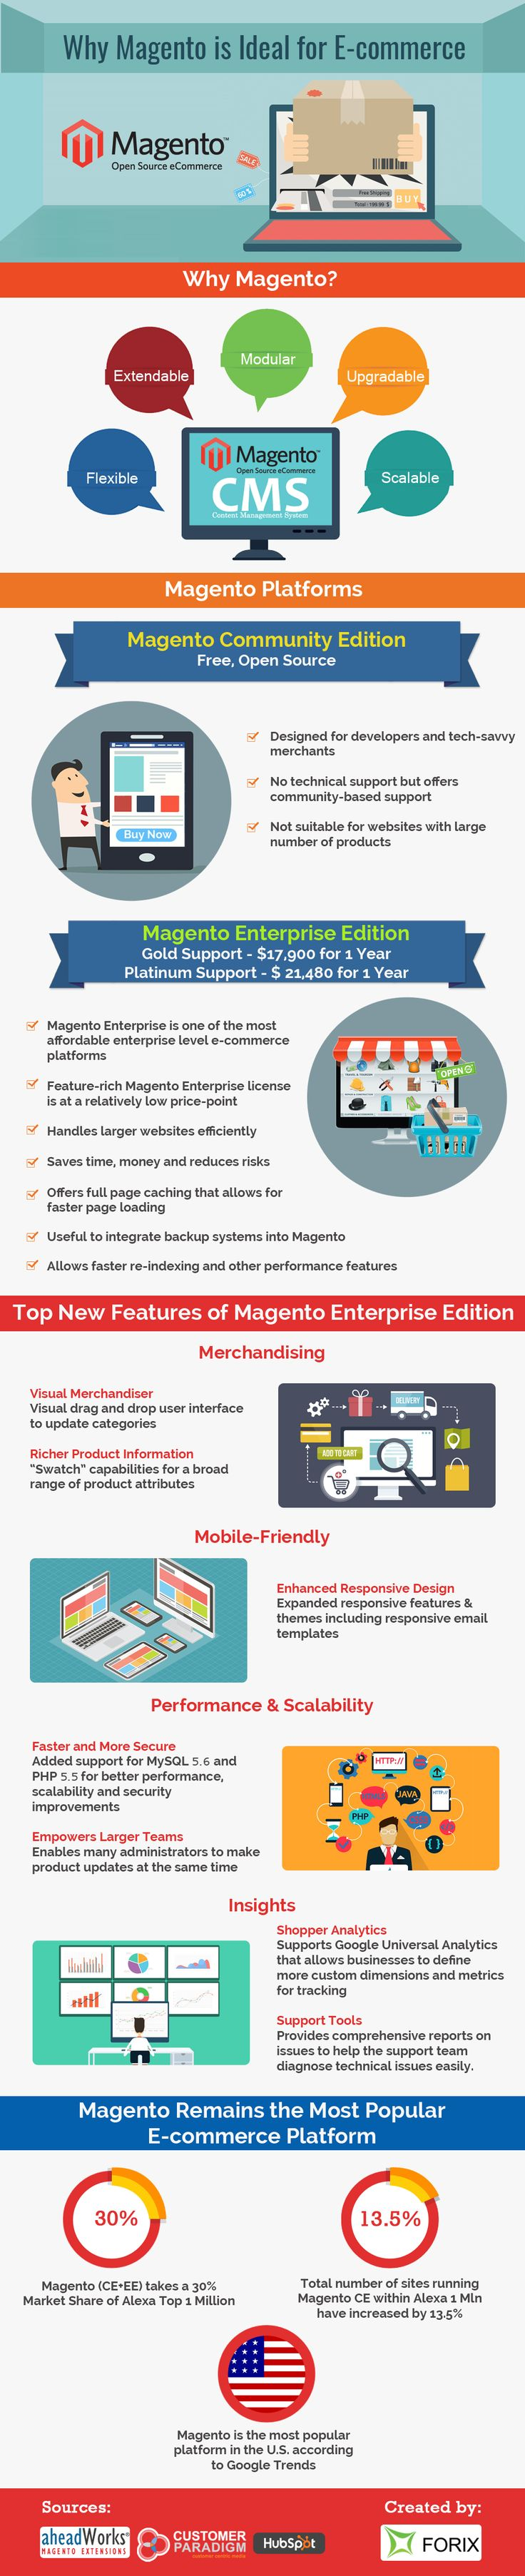 "This #infographic by @forix explains the most frequently asked question ""Why Magento is ideal for E-Commerce""."